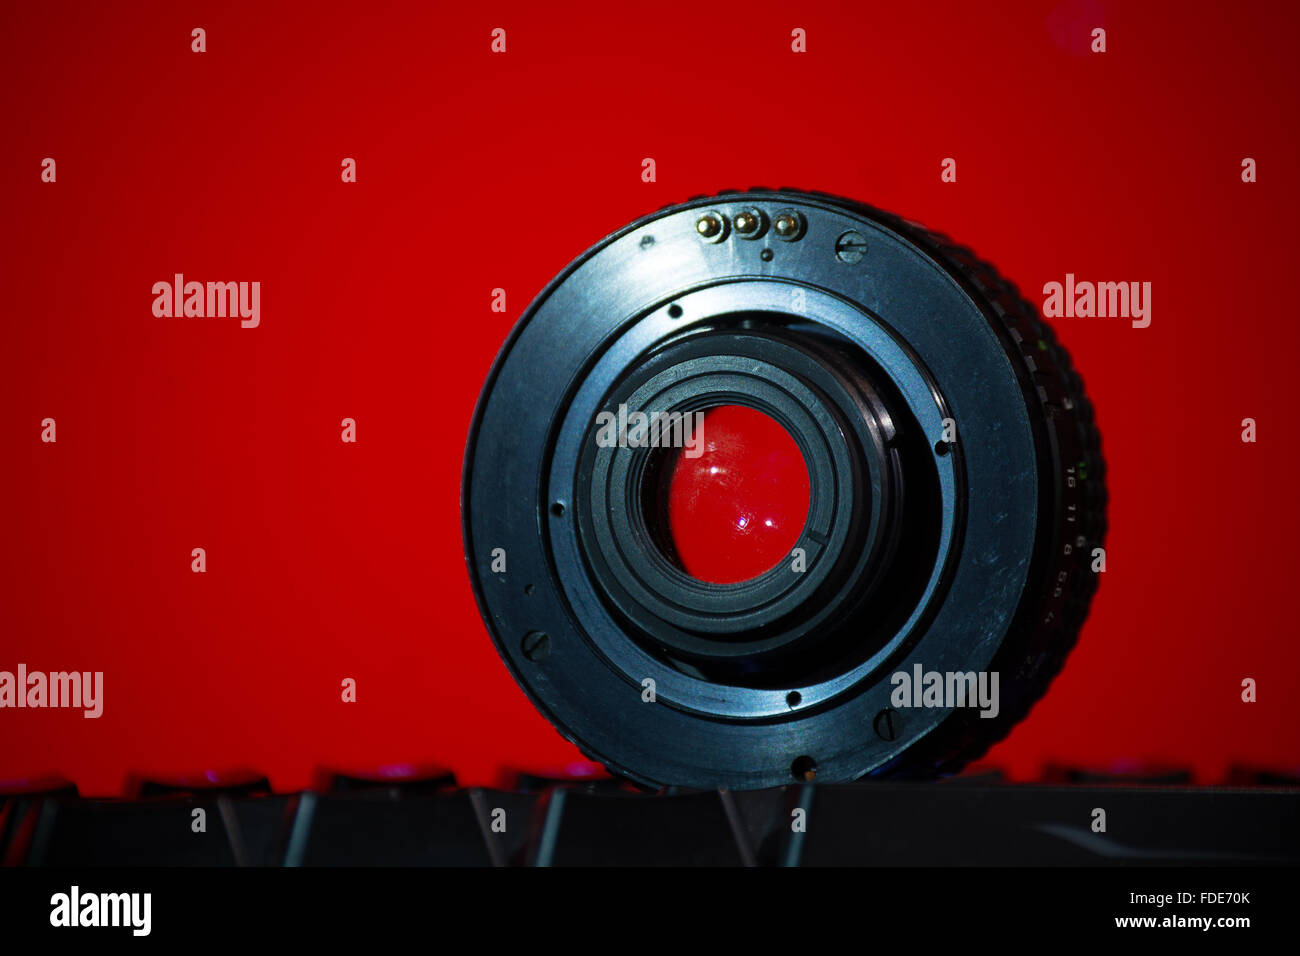 A lens from the side of the mount atop a keyboard in front of a red background. - Stock Image